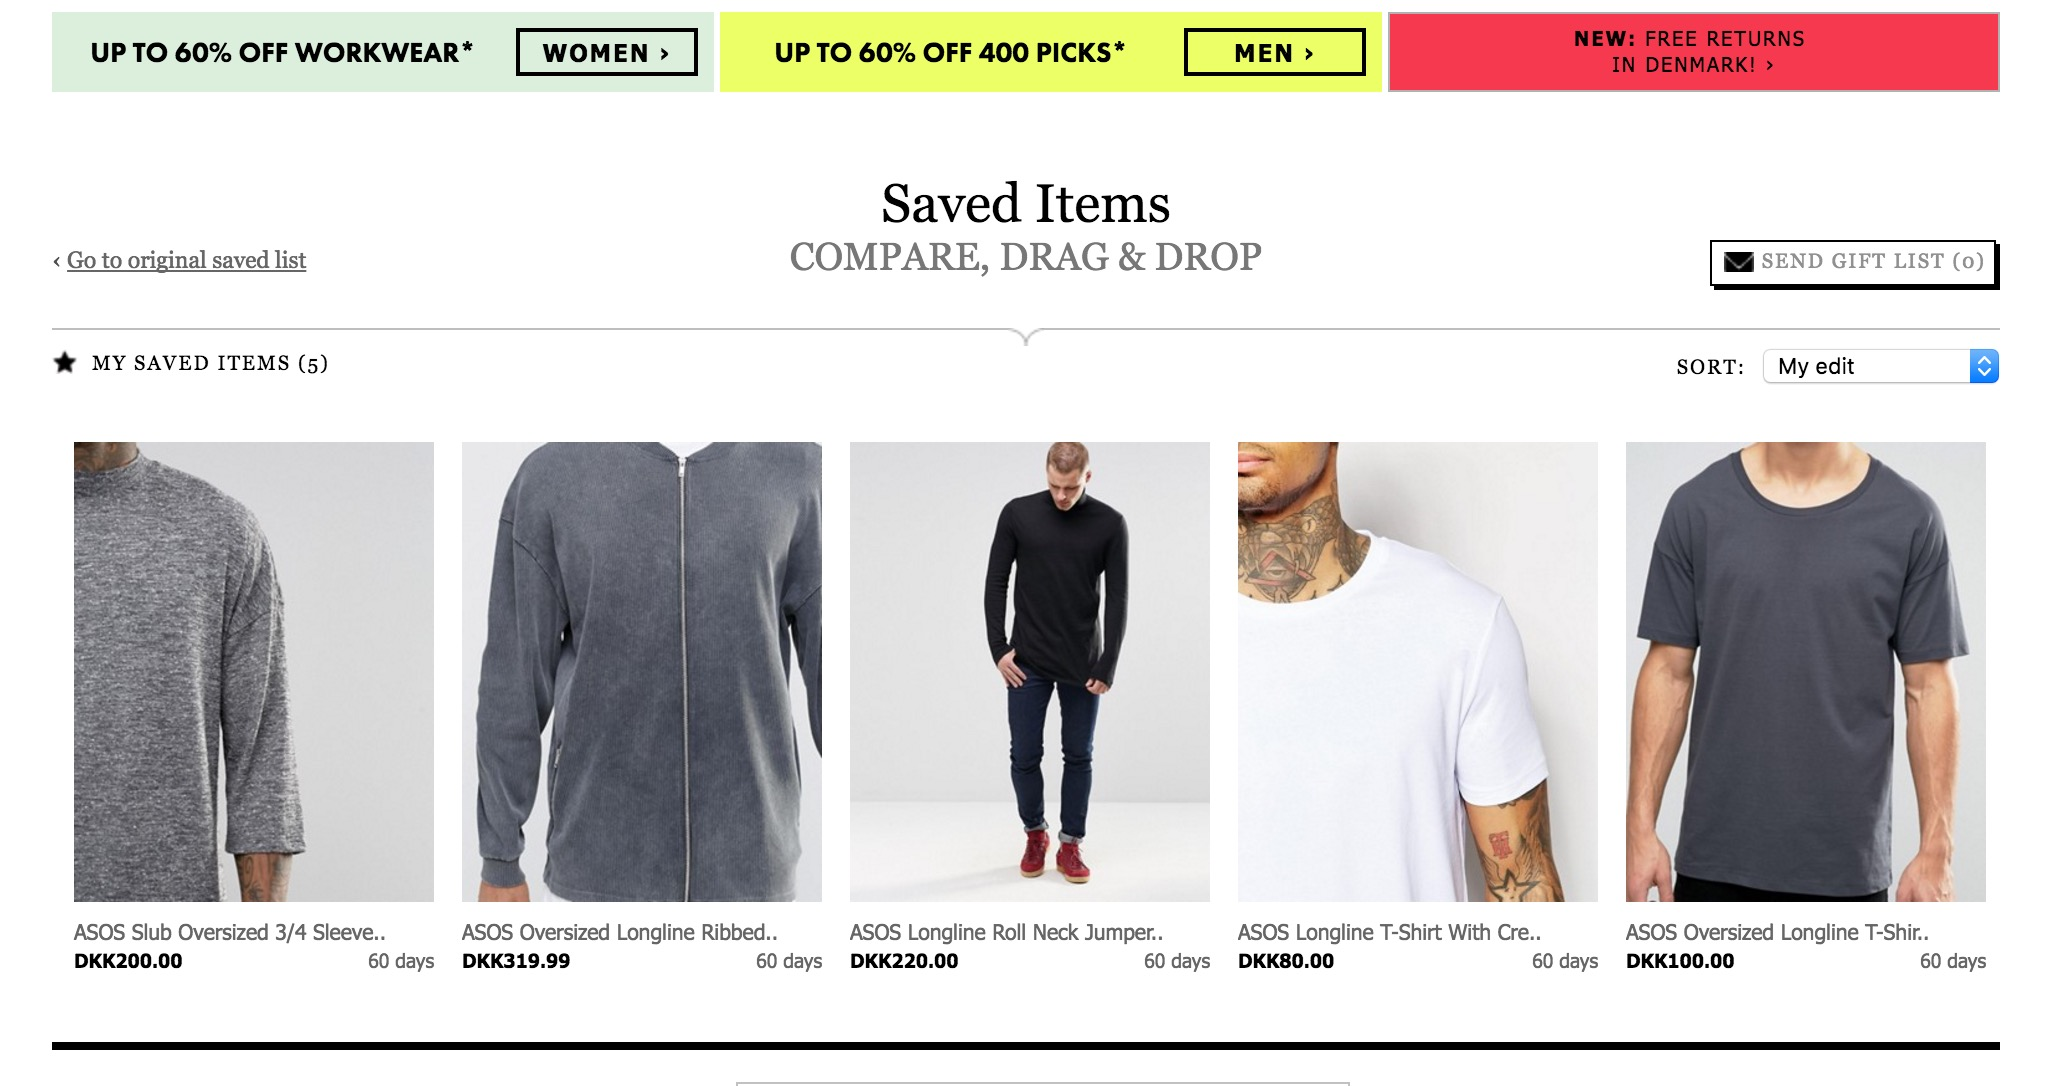 Asos Longline Saved Items Closer Look